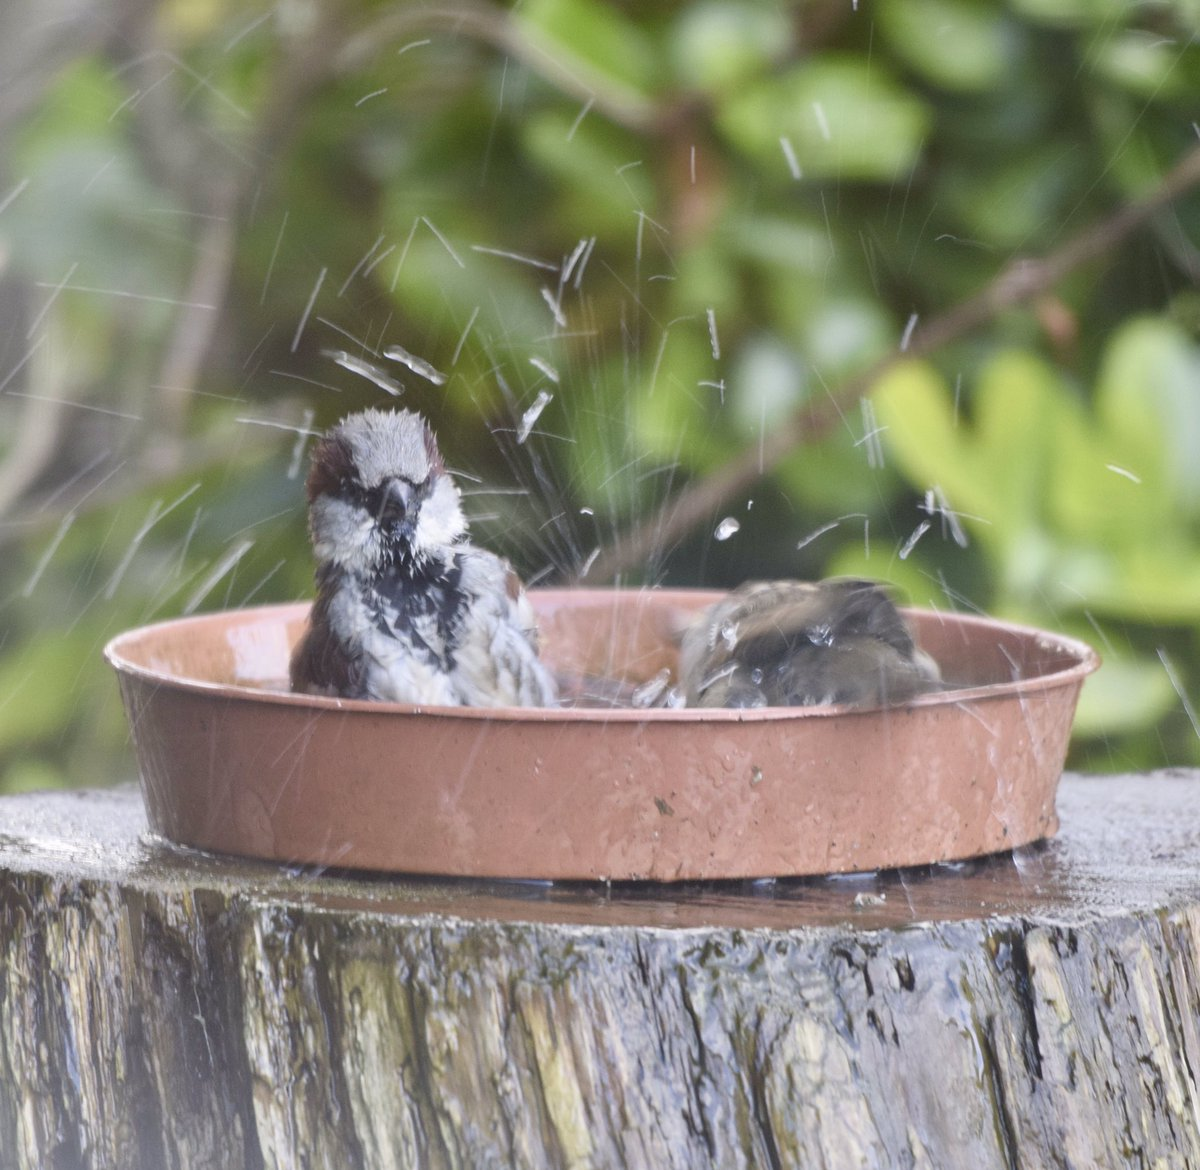 Remember a source of clean unfrozen water can be vital for birds in the winter. The House Sparrows in our garden were certainly enjoying it this morning @NTBirdClub @Natures_Voice https://t.co/I3V7vR1pvw